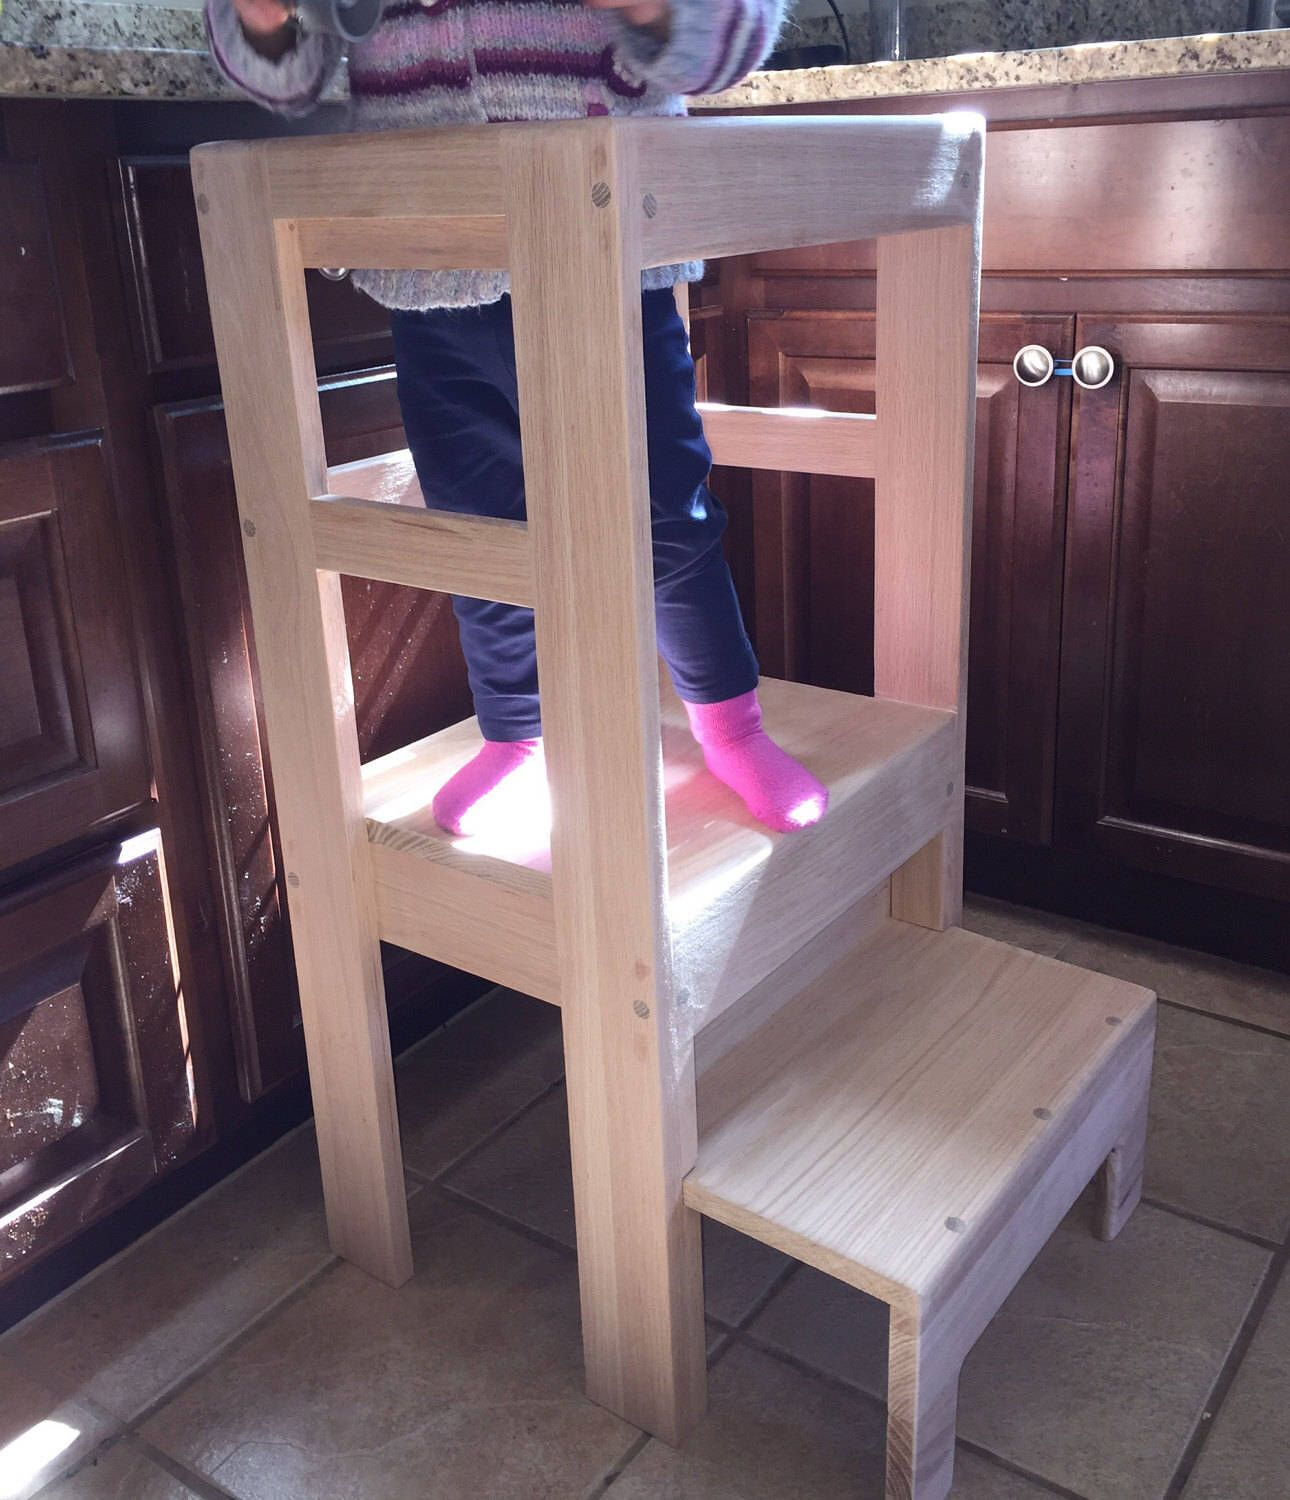 Children's Interactive Kitchen Oak Play Step Stool Counter